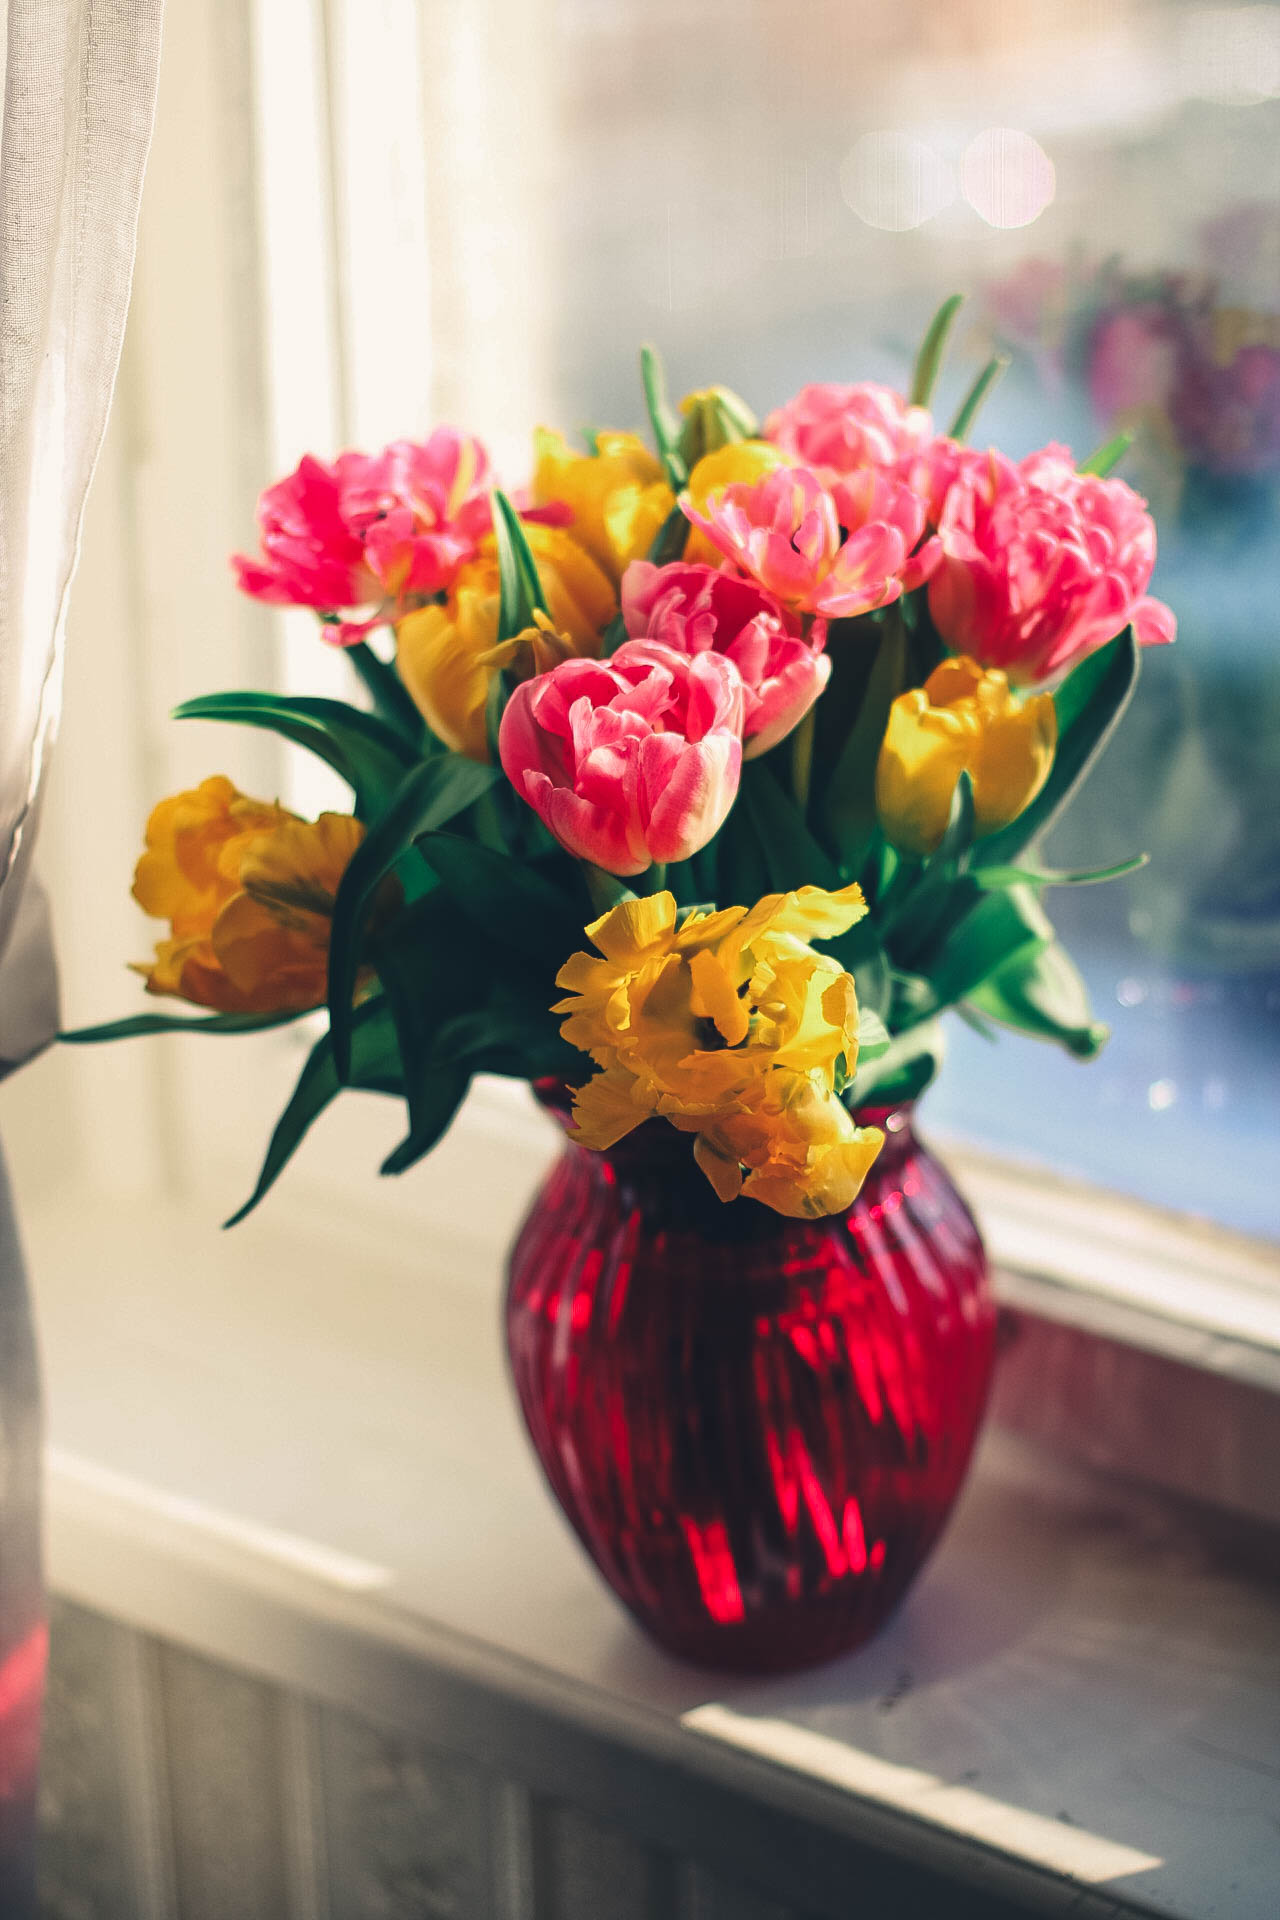 Free stock photos of flower vase pexels pink and yellow petaled flower on red glass vase reviewsmspy